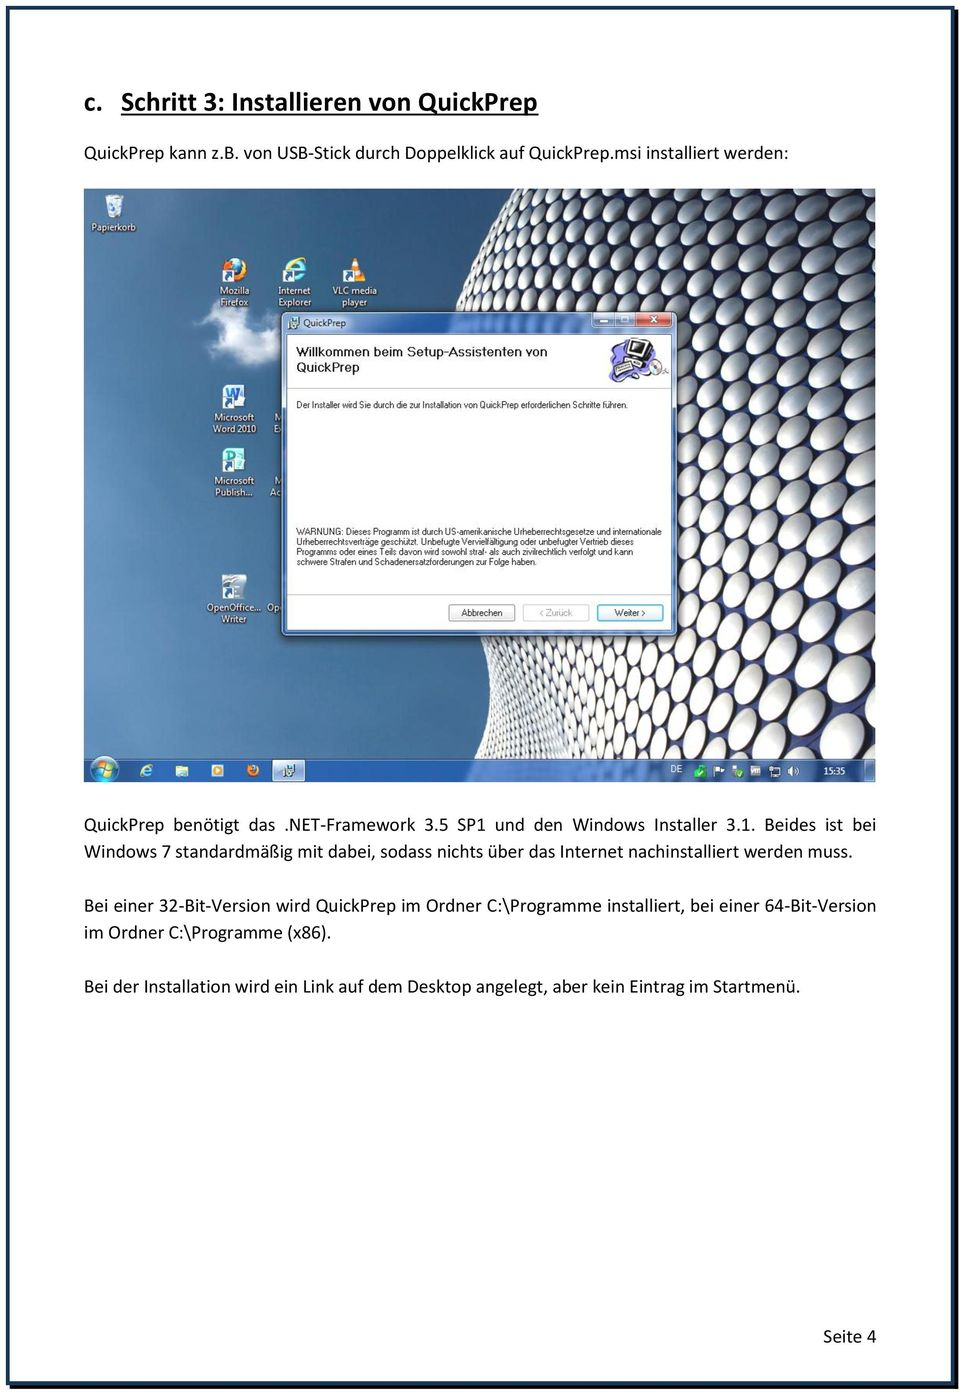 und den Windows Installer 3.1.